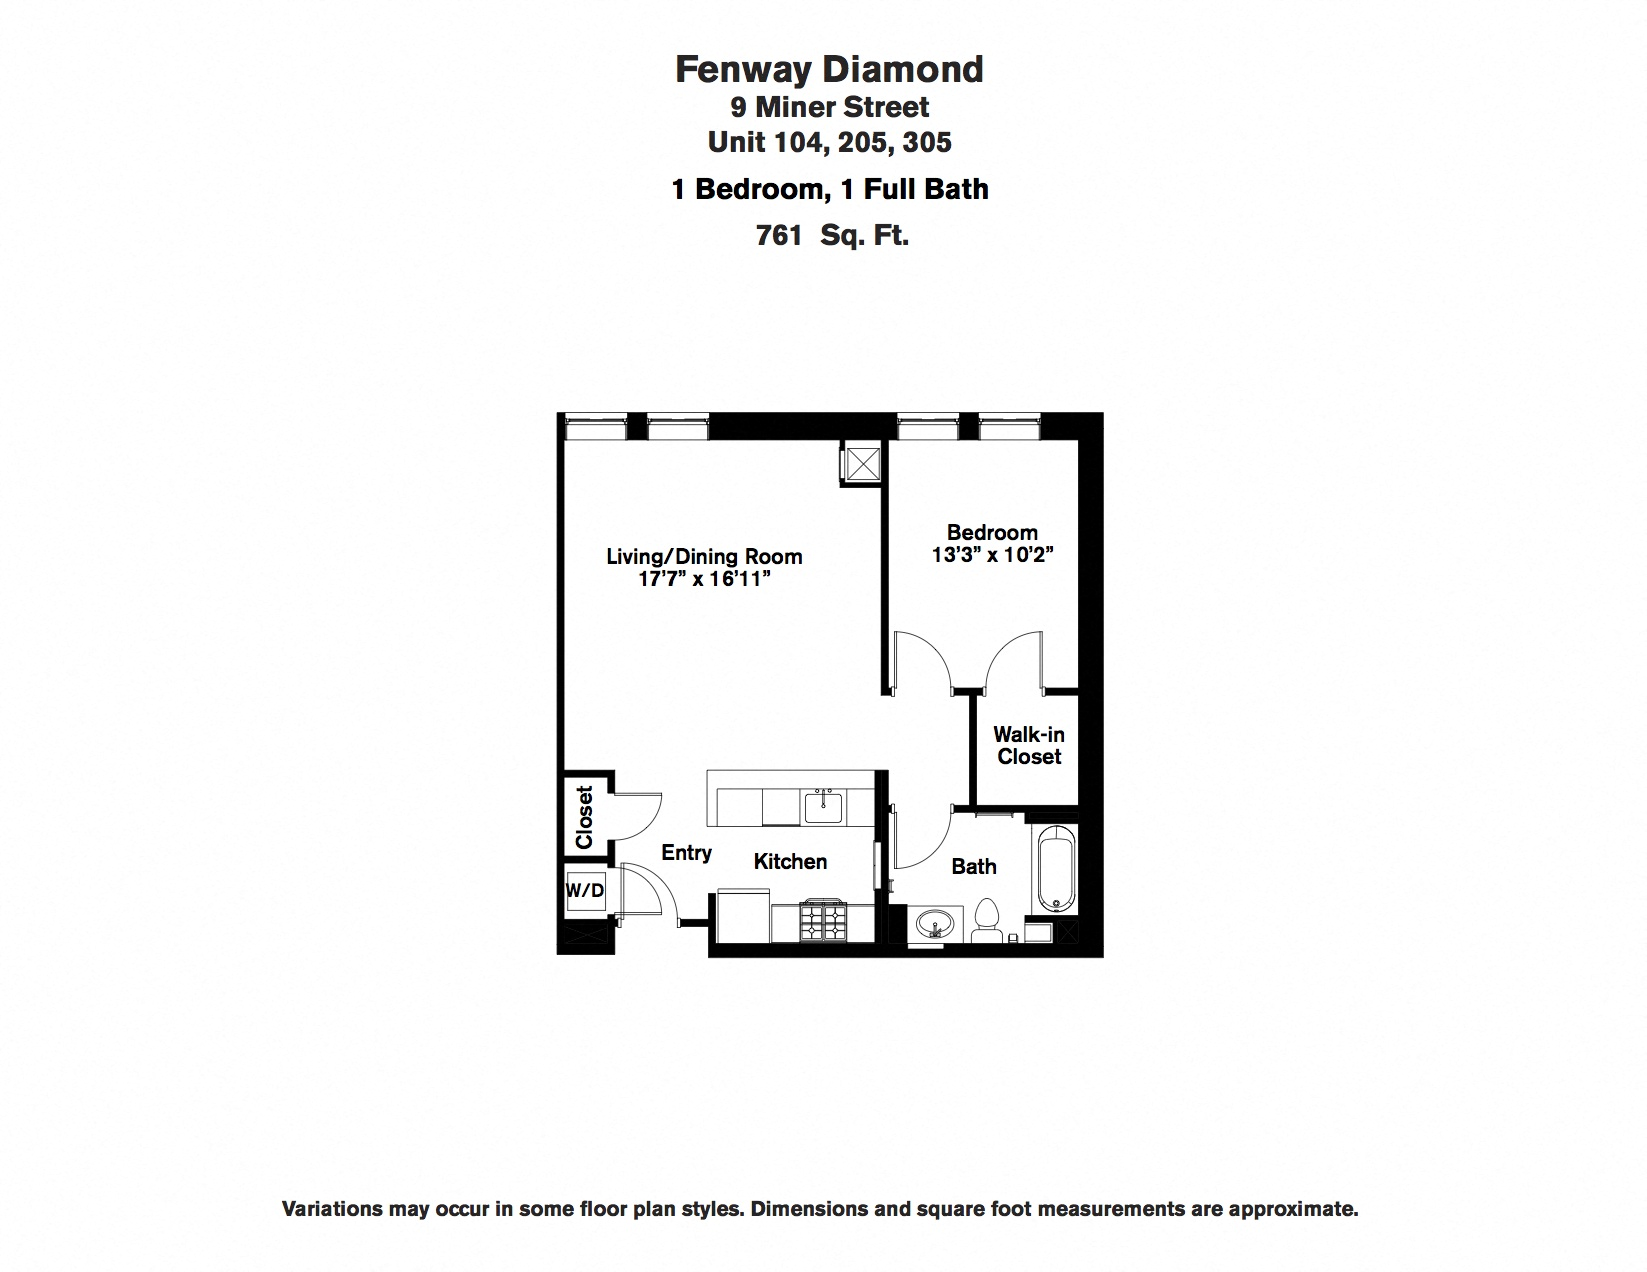 Click to view Floor plan 1 BR w/ Walk-in Closet image 2